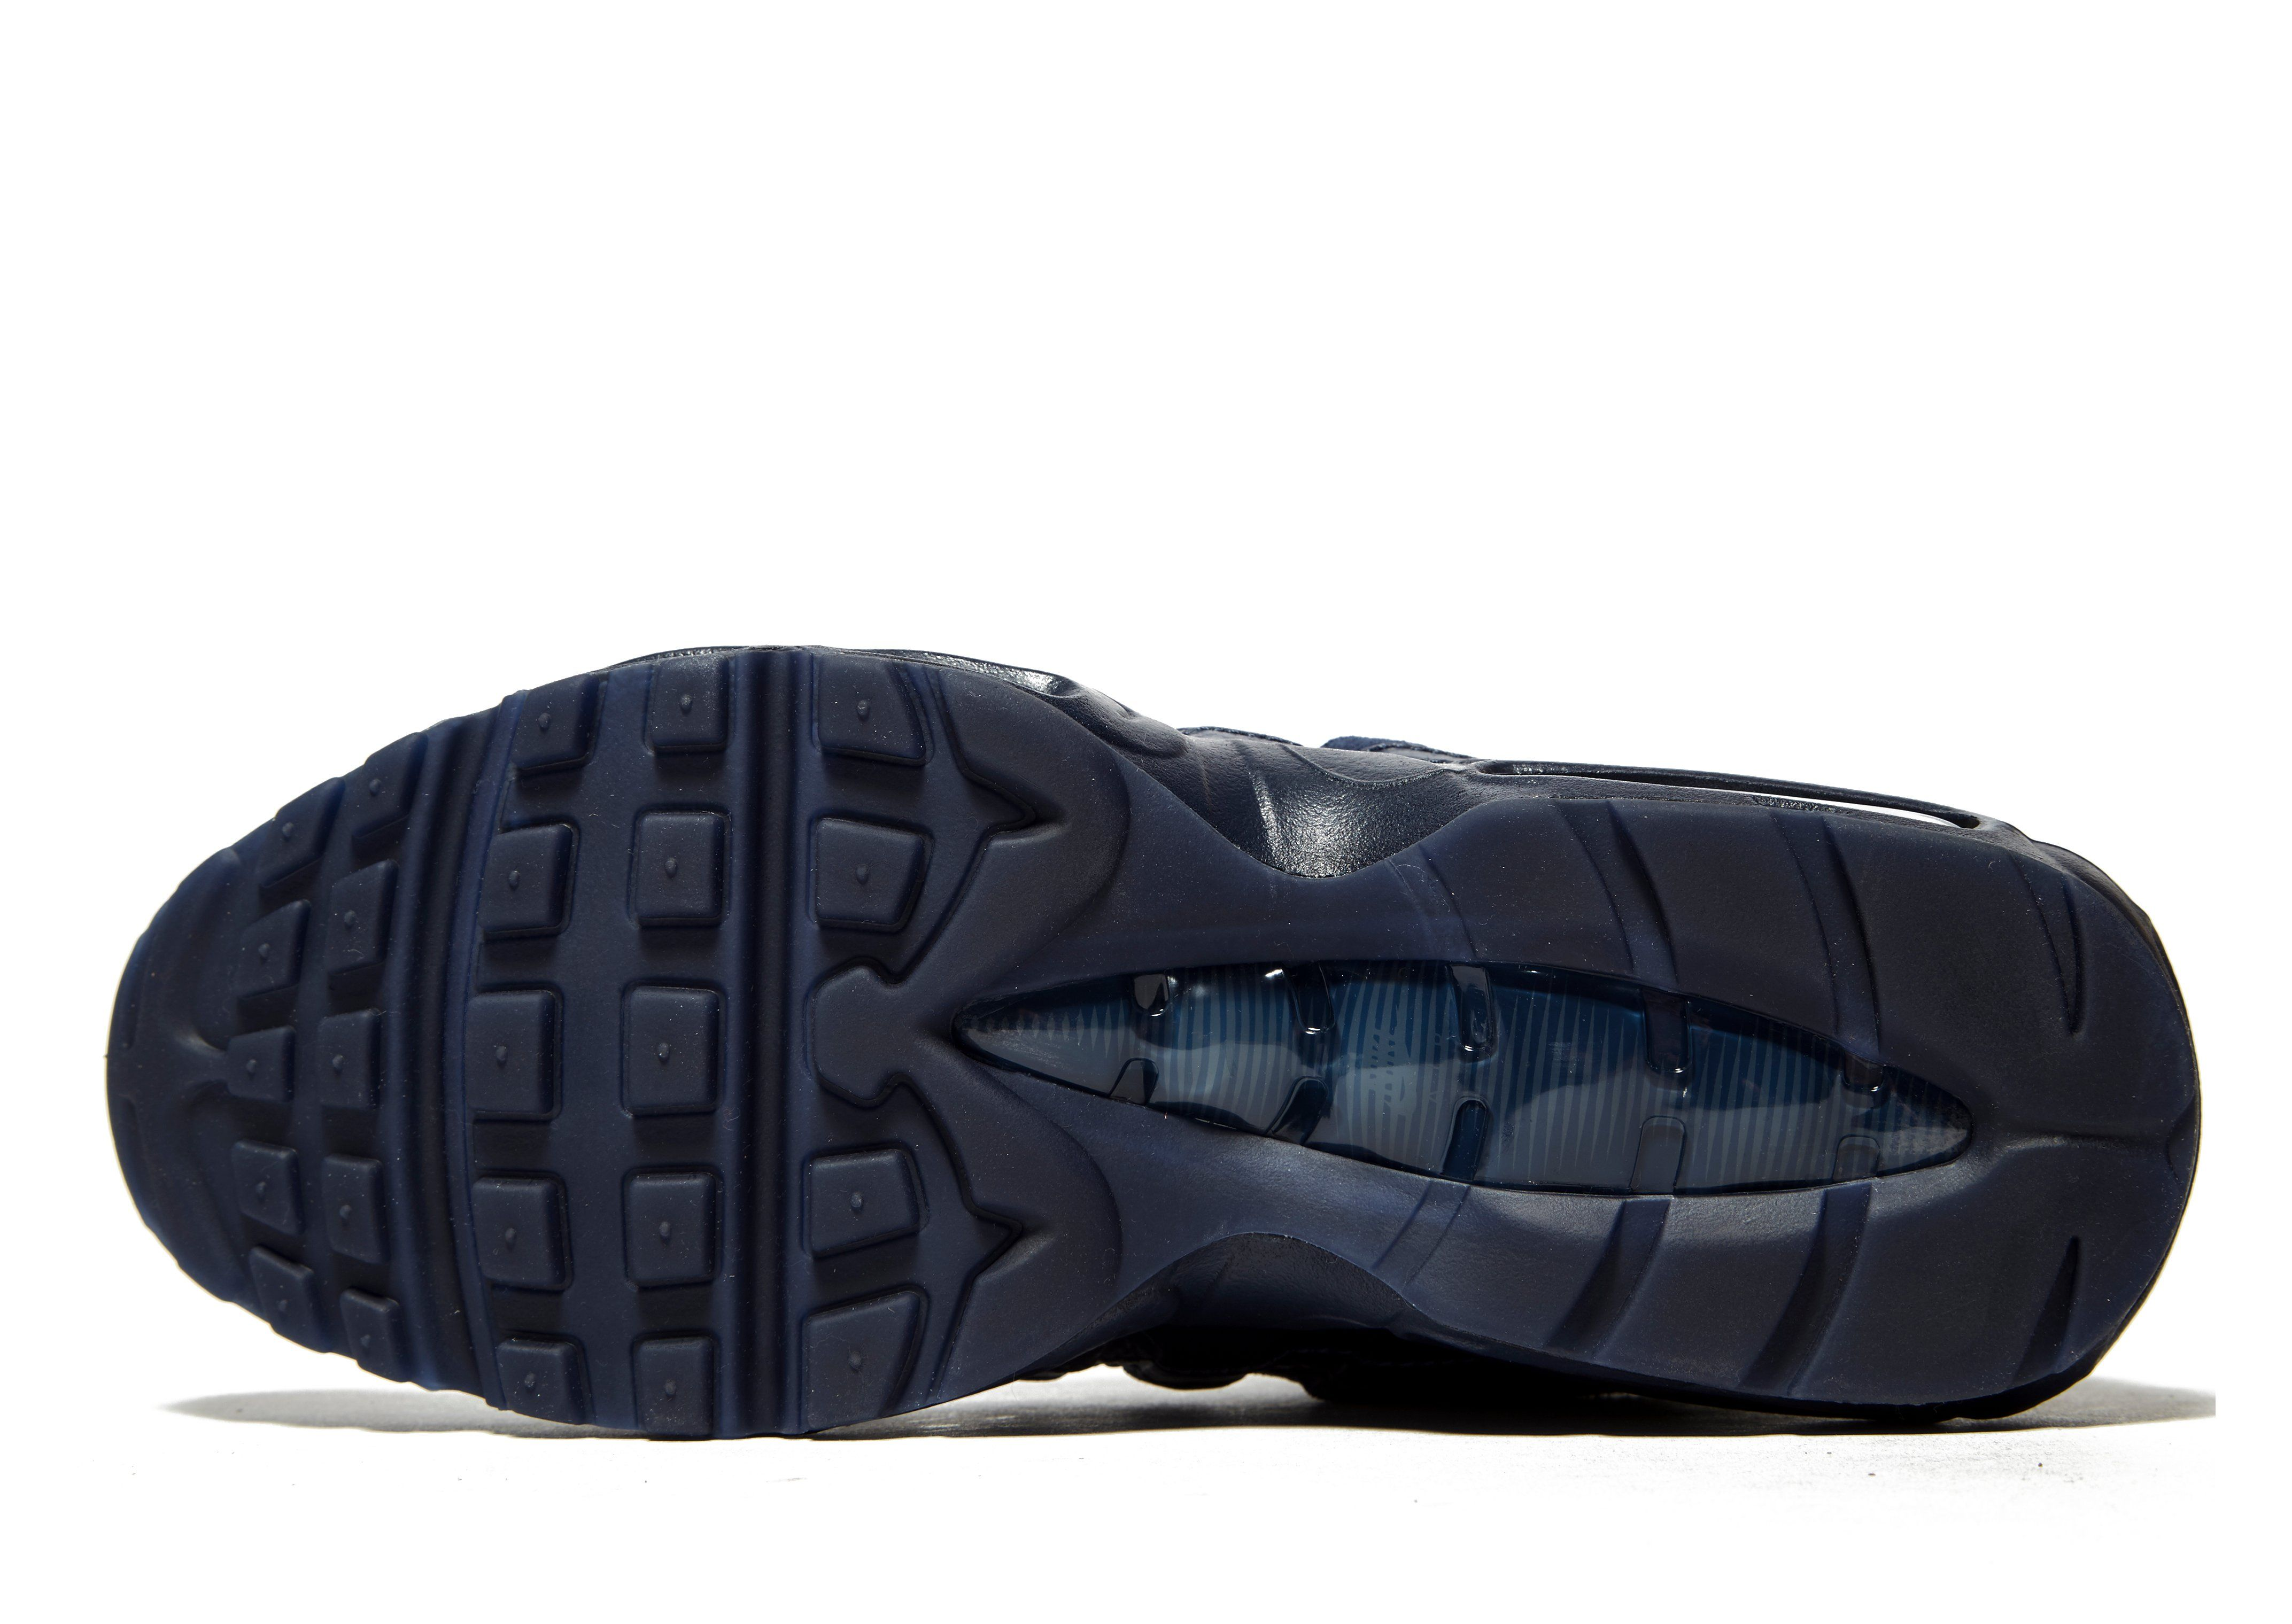 air max 95 size guide